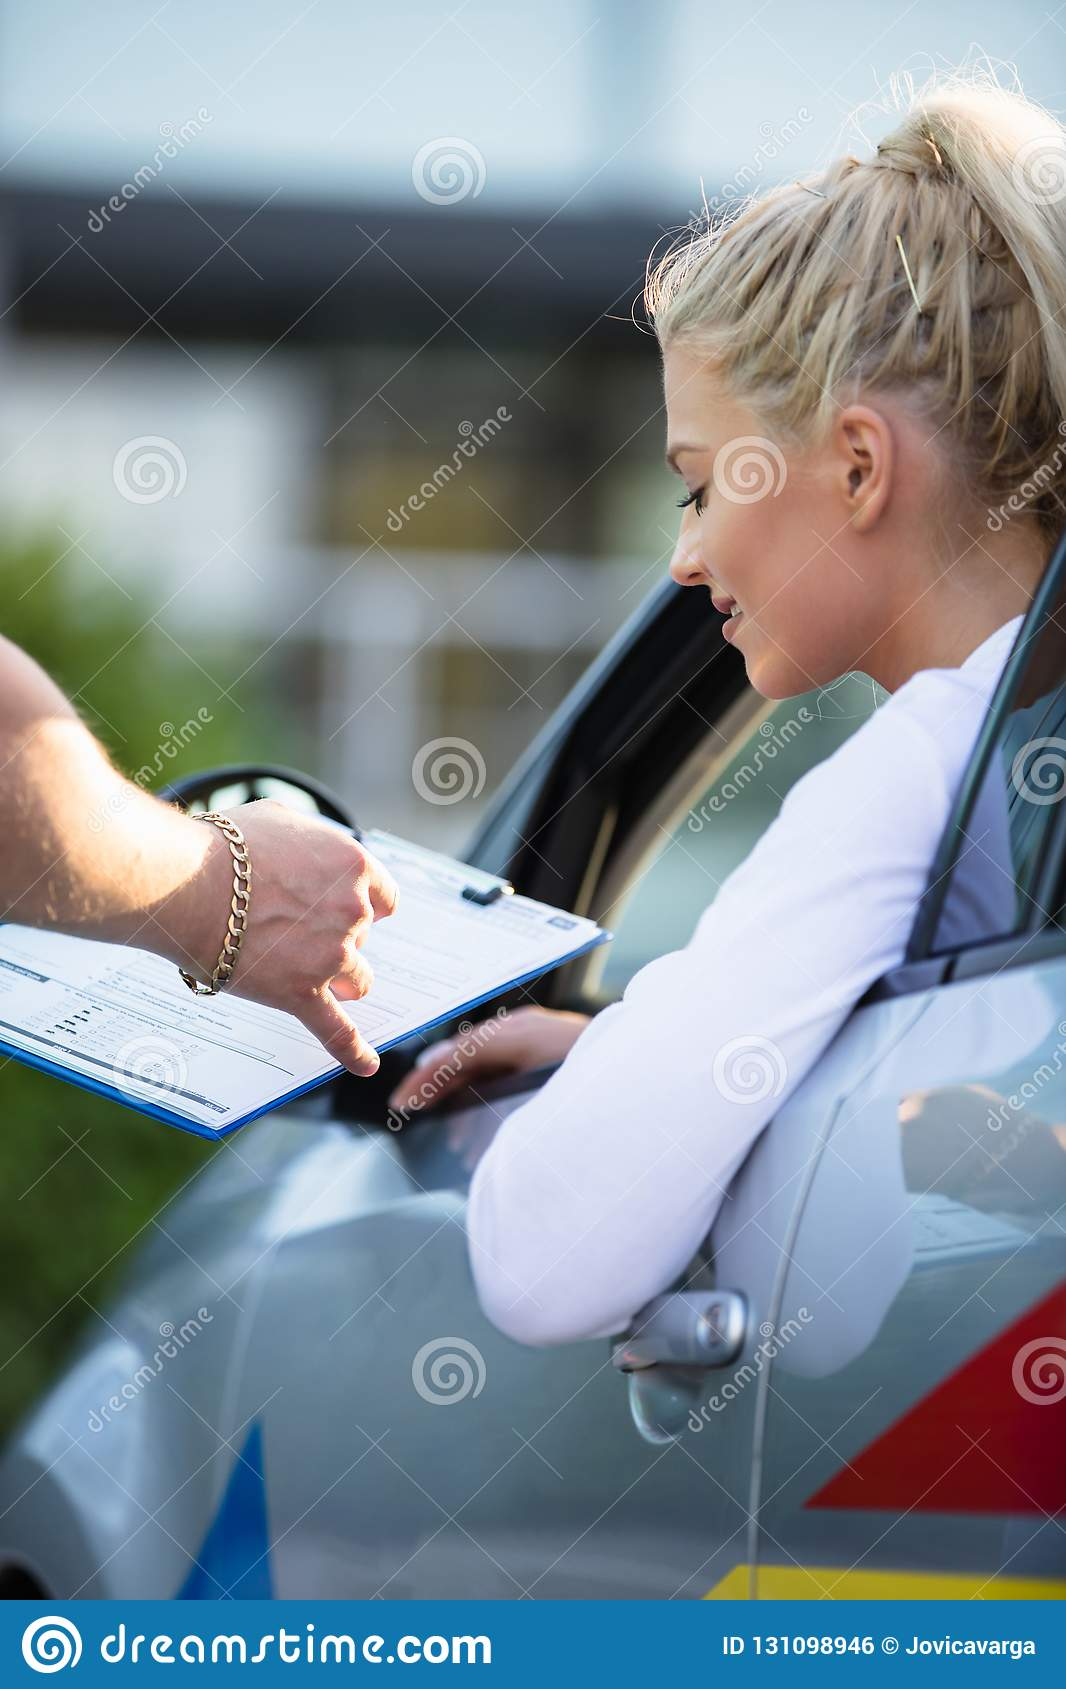 Young woman passing driving license exam